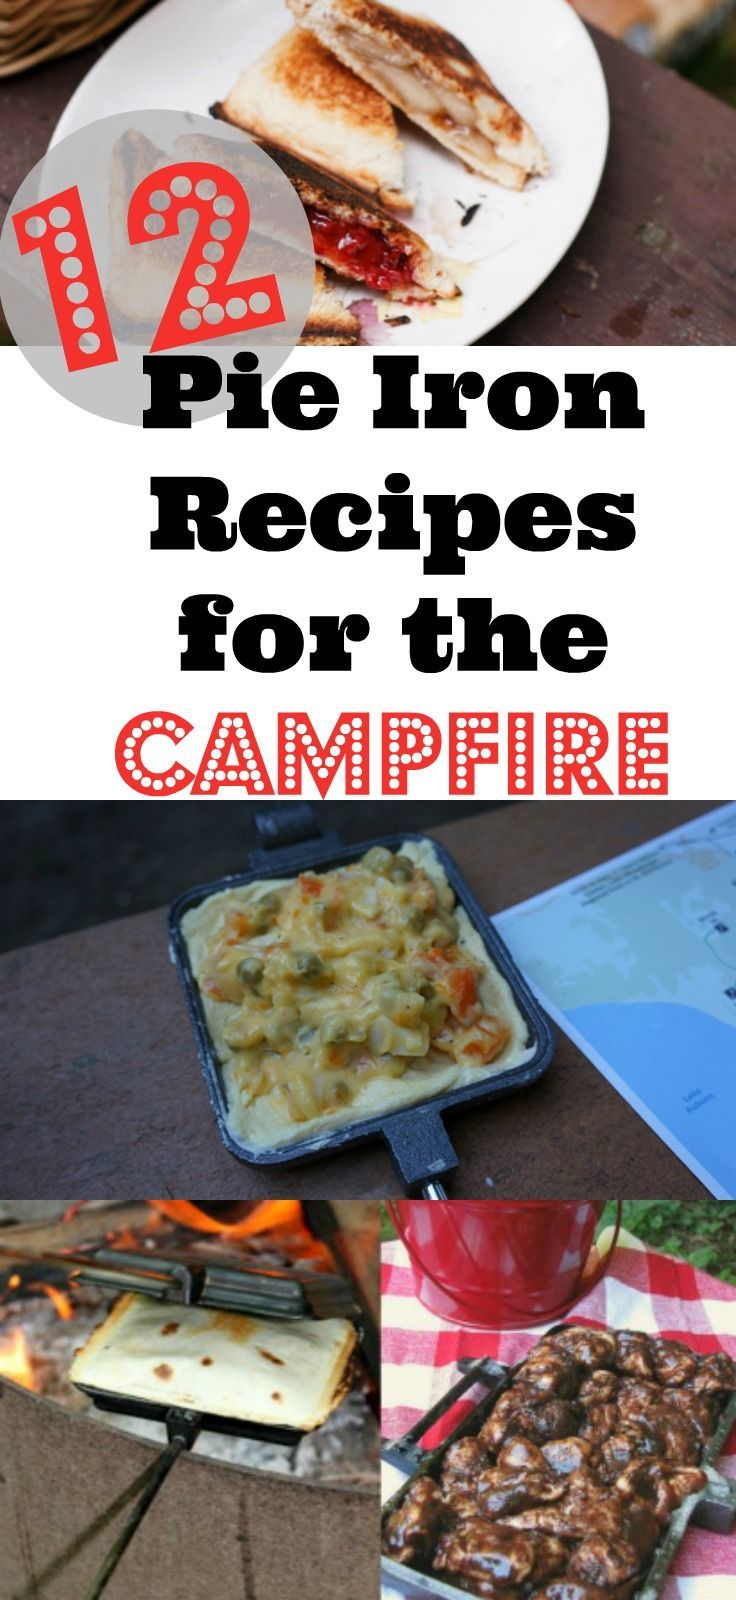 Pie Iron Recipes - 12 easy recipes you need for your next camping trip - Breakfast, Lunch/Dinner, Desserts